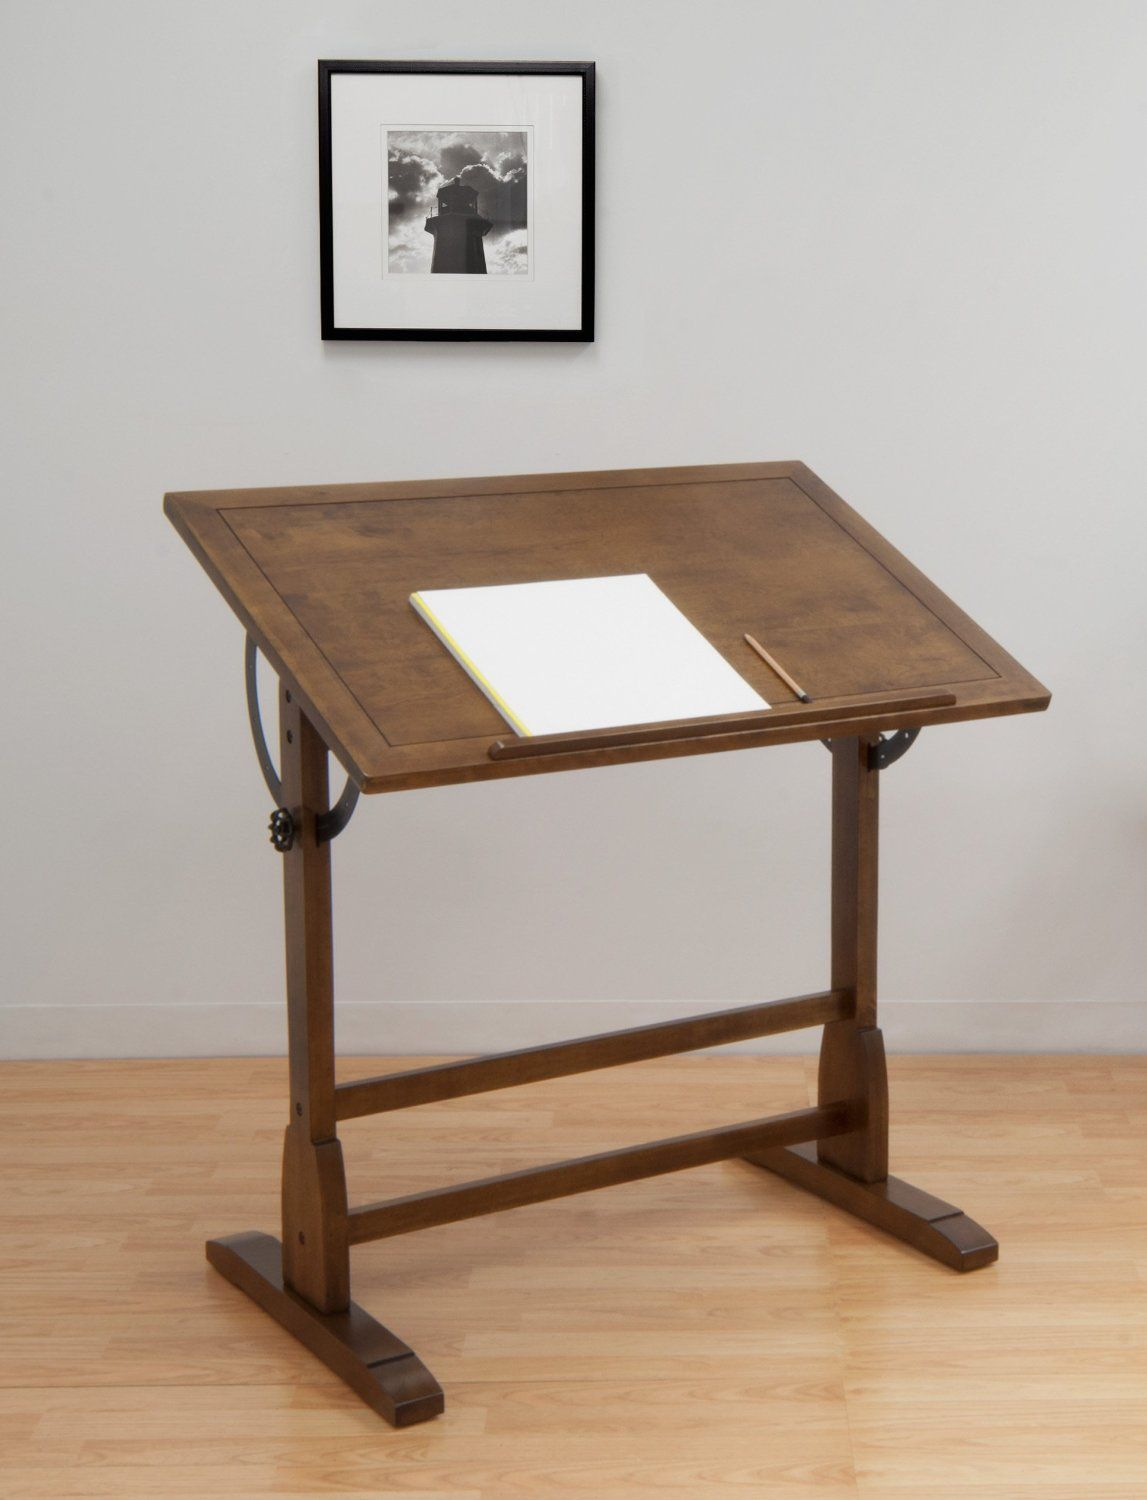 Delicieux Amazon.com: Studio Designs 13304 Vintage Drafting Table, Rustic Oak. The  Classic Design Of The 36 Vintage Drafting Table By Studio Designs Is  Reminiscent Of ...